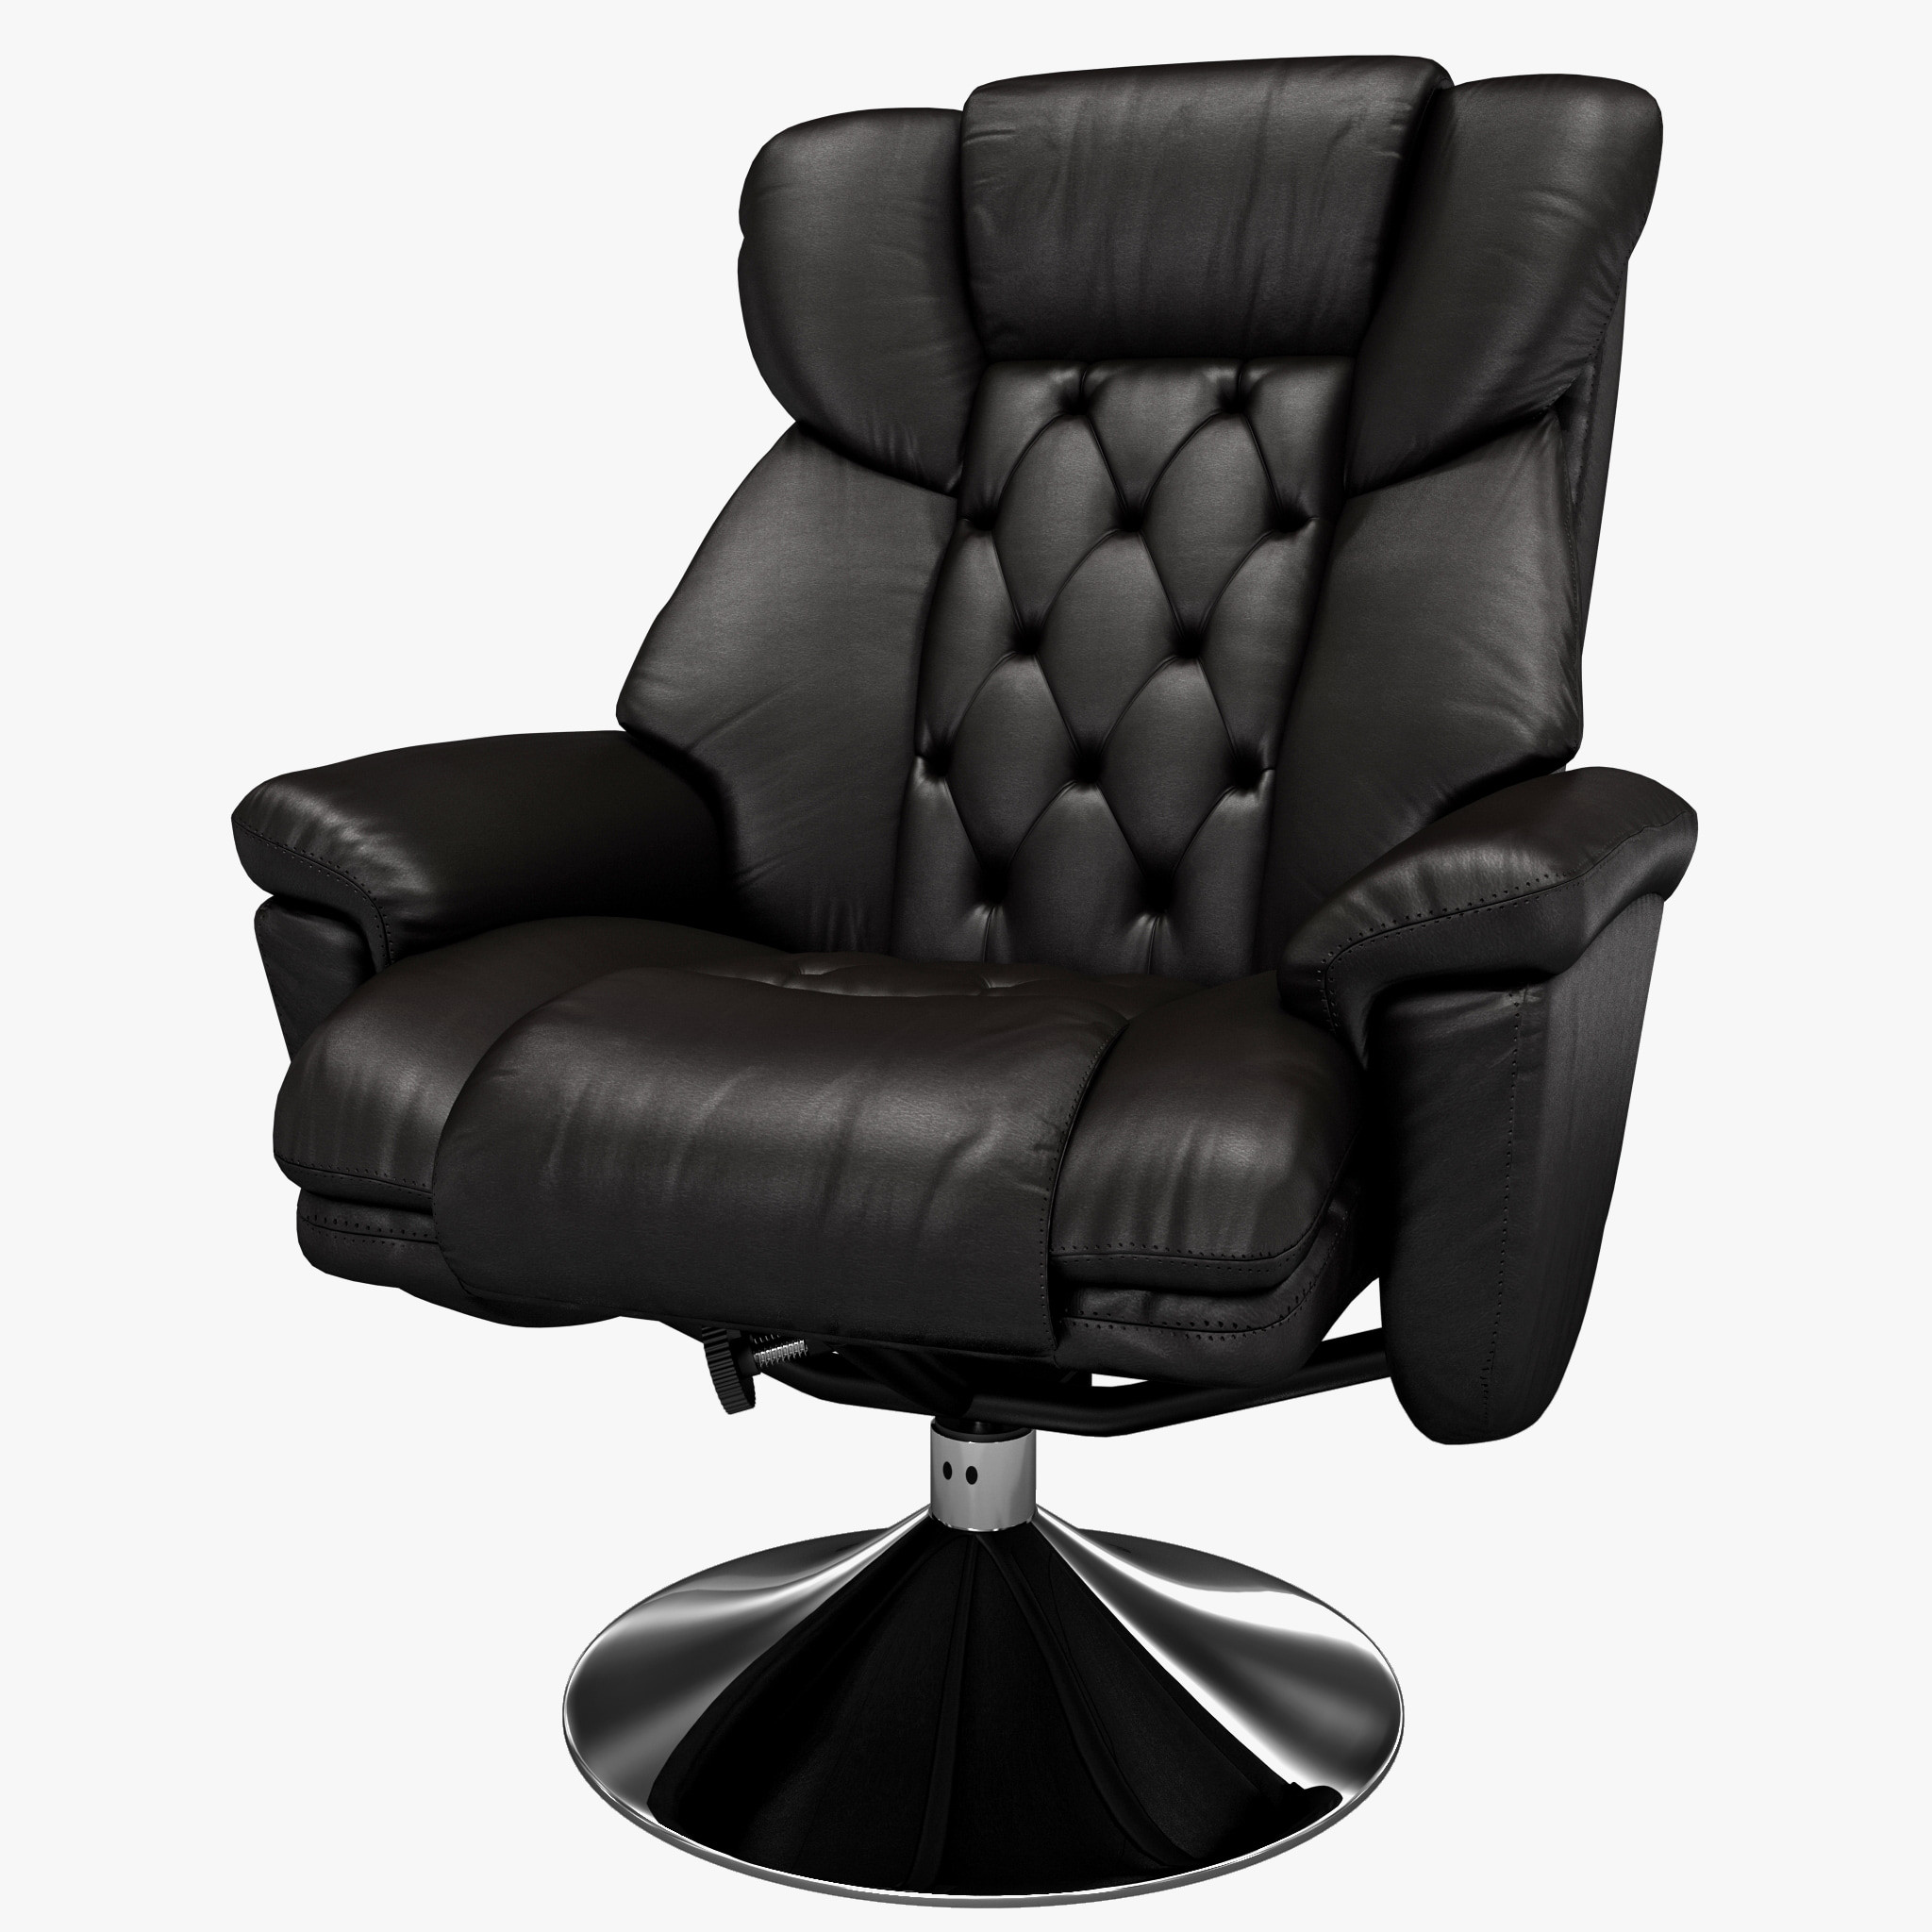 3ds max deluxe leather recliner chair for Chair design 3ds max